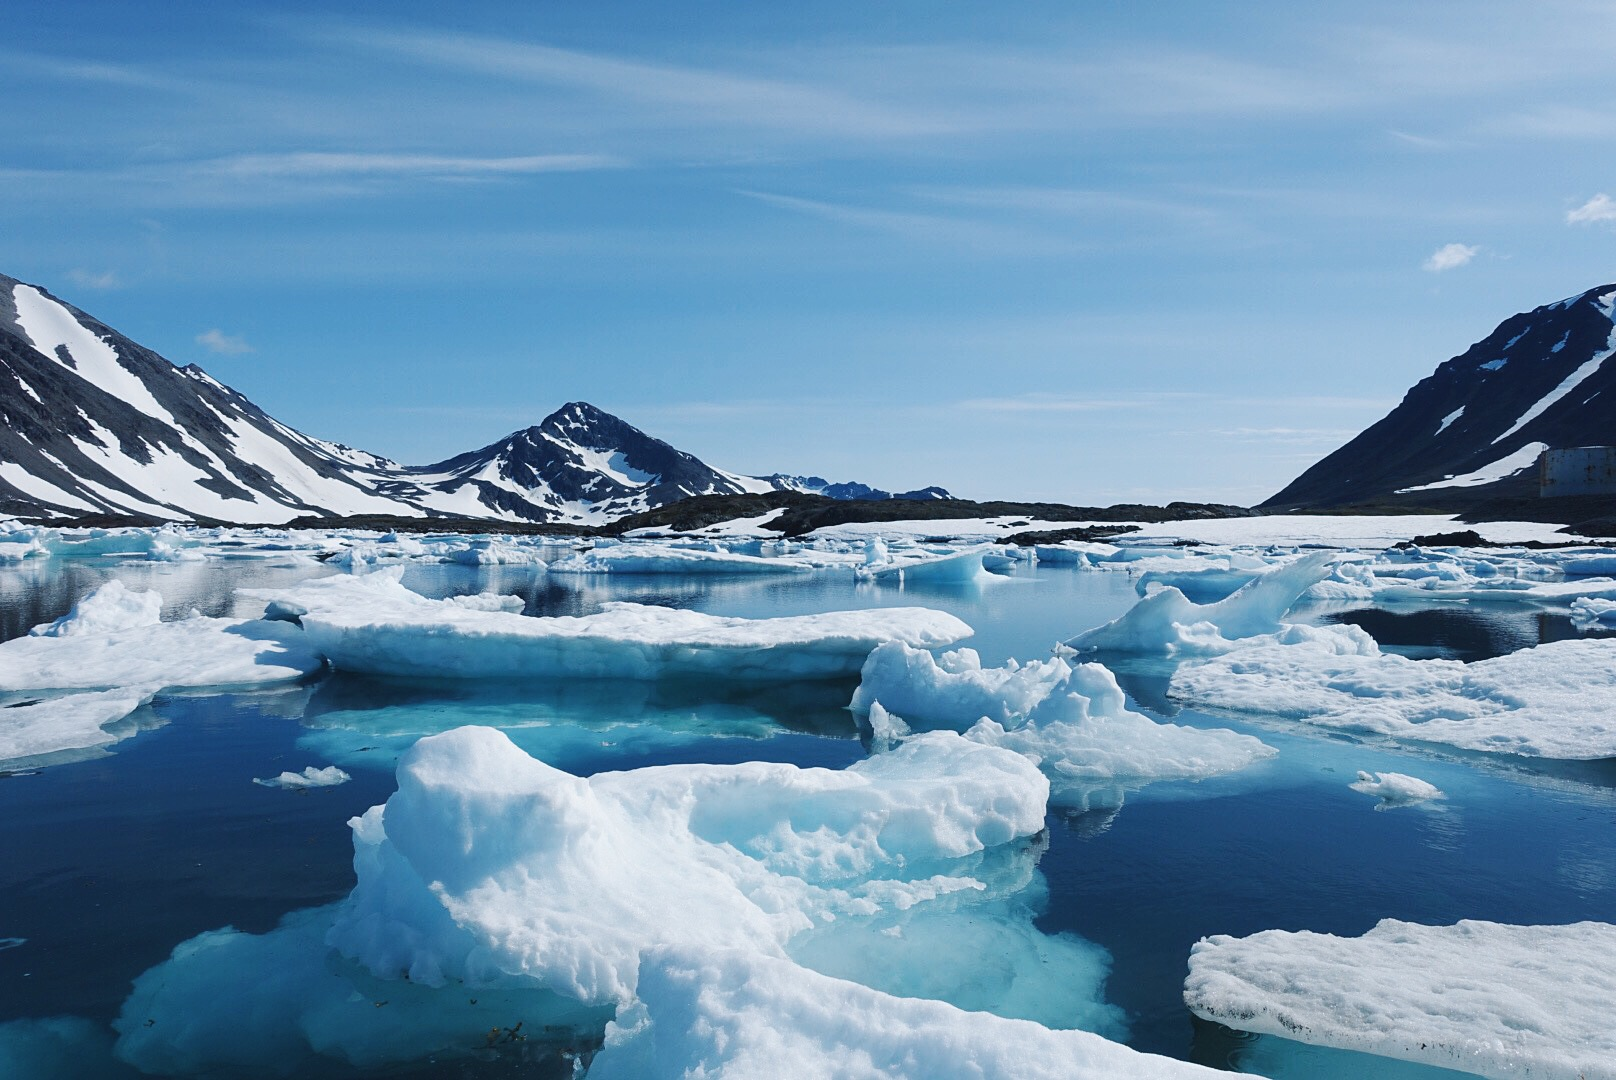 The fjords that surround the Greenlandic village of Kulusuk are renowned for their number of icebergs and whales.